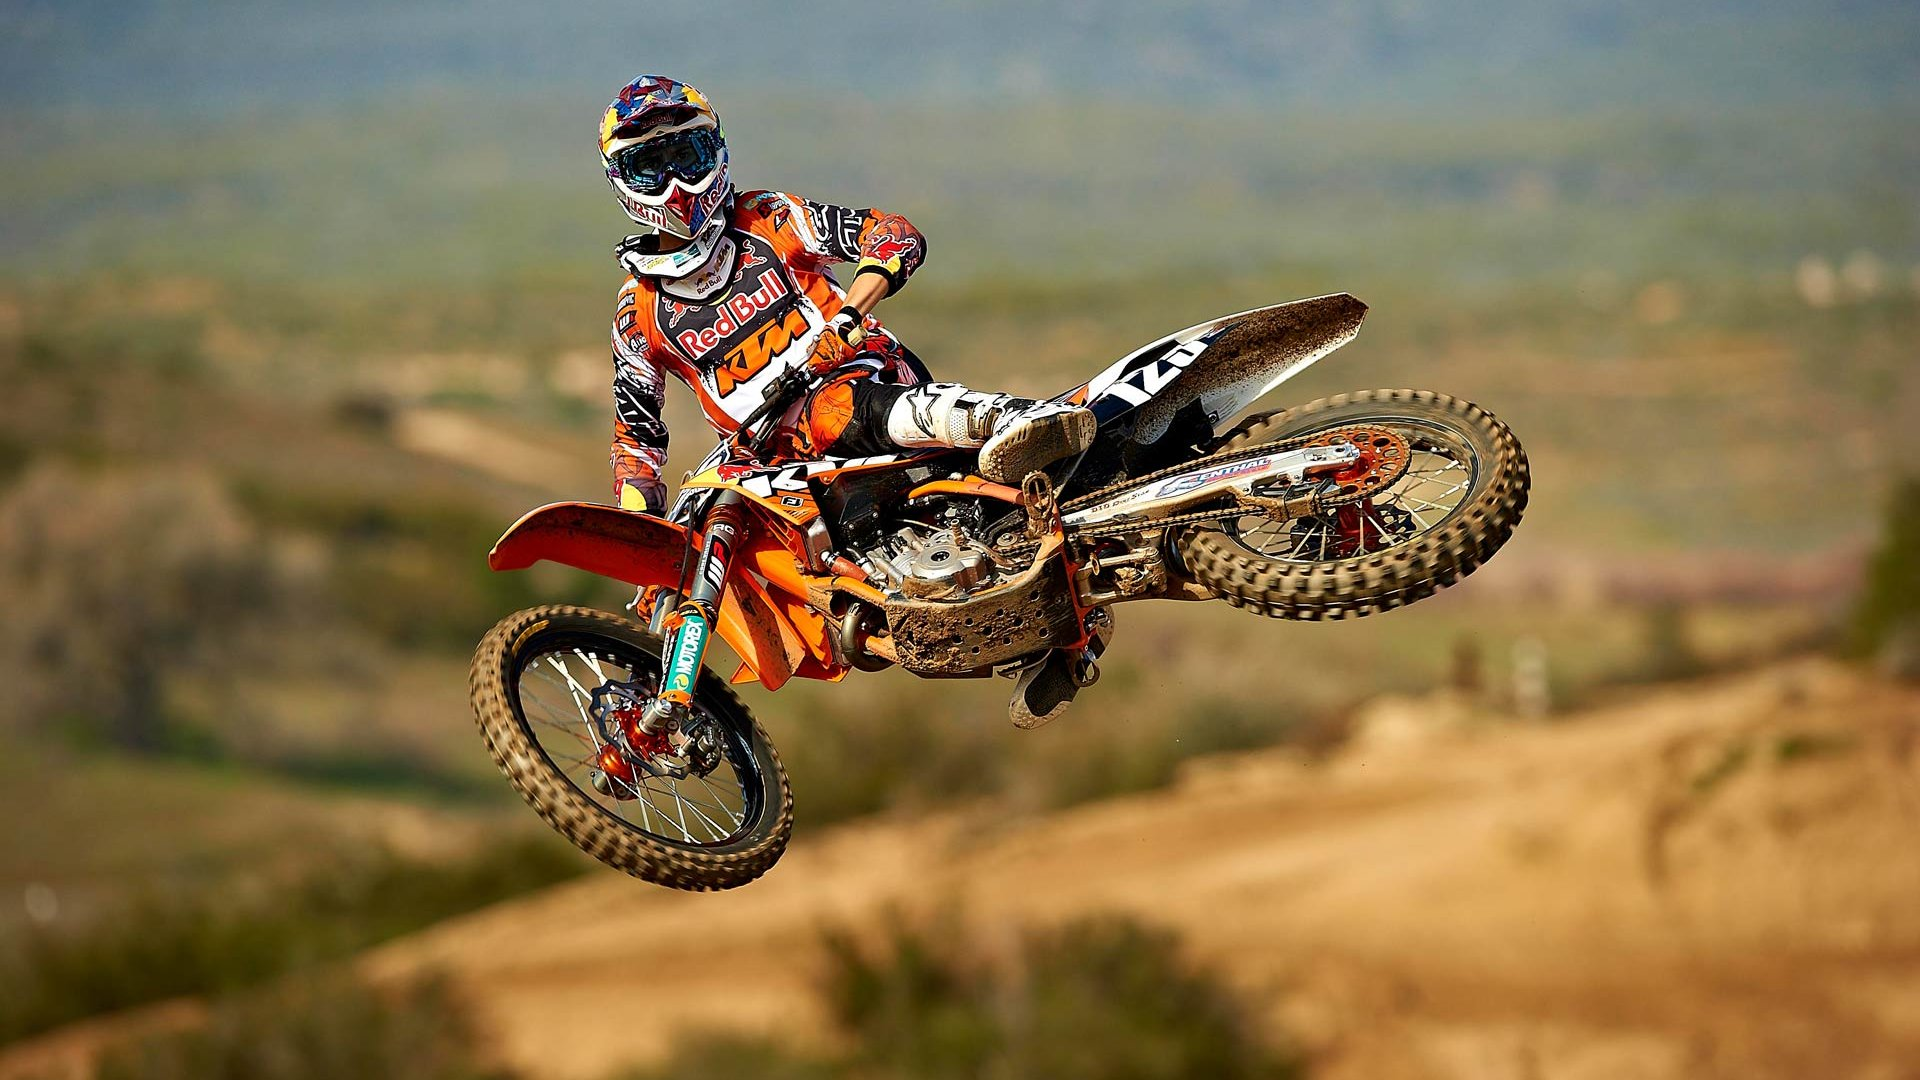 Ktm Motocross Wallpaper Hd Marvin Musquin Wallpapers Racer X Online